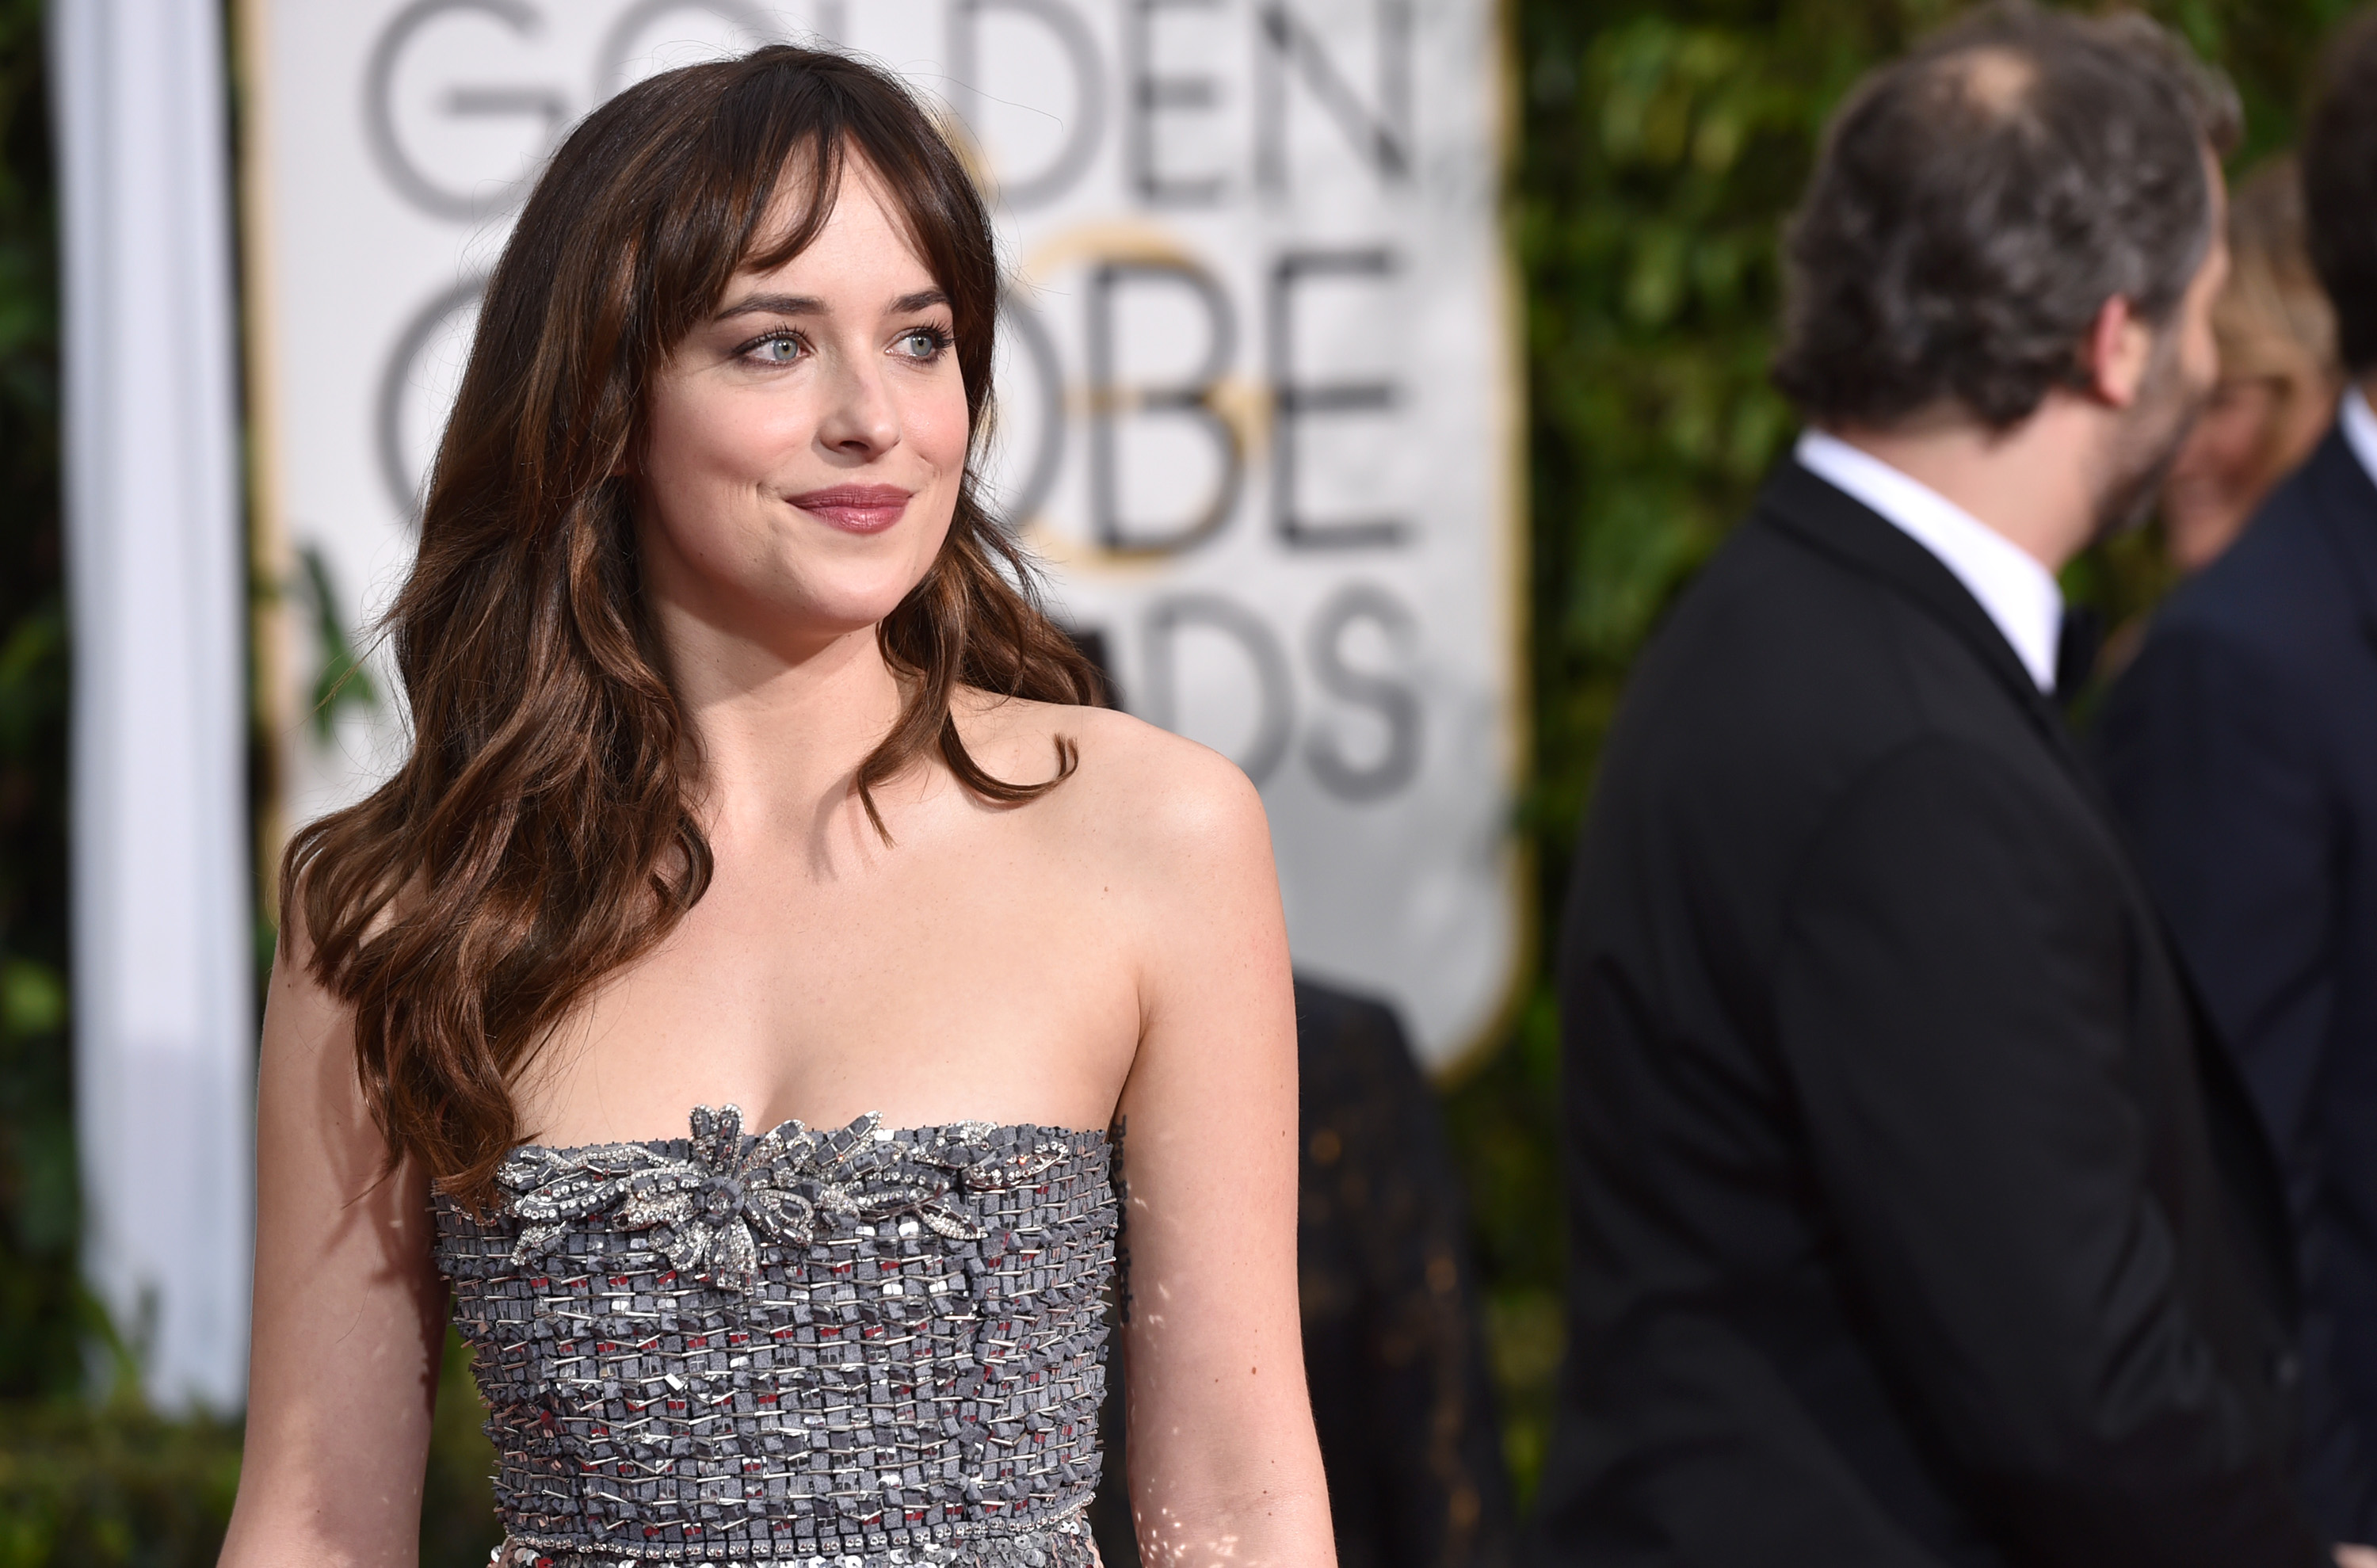 Dakota Johnson arrives at the 72nd annual Golden Globe Awards at the Beverly Hilton Hotel on Sunday, Jan. 11, 2015, in Beverly Hills, Calif